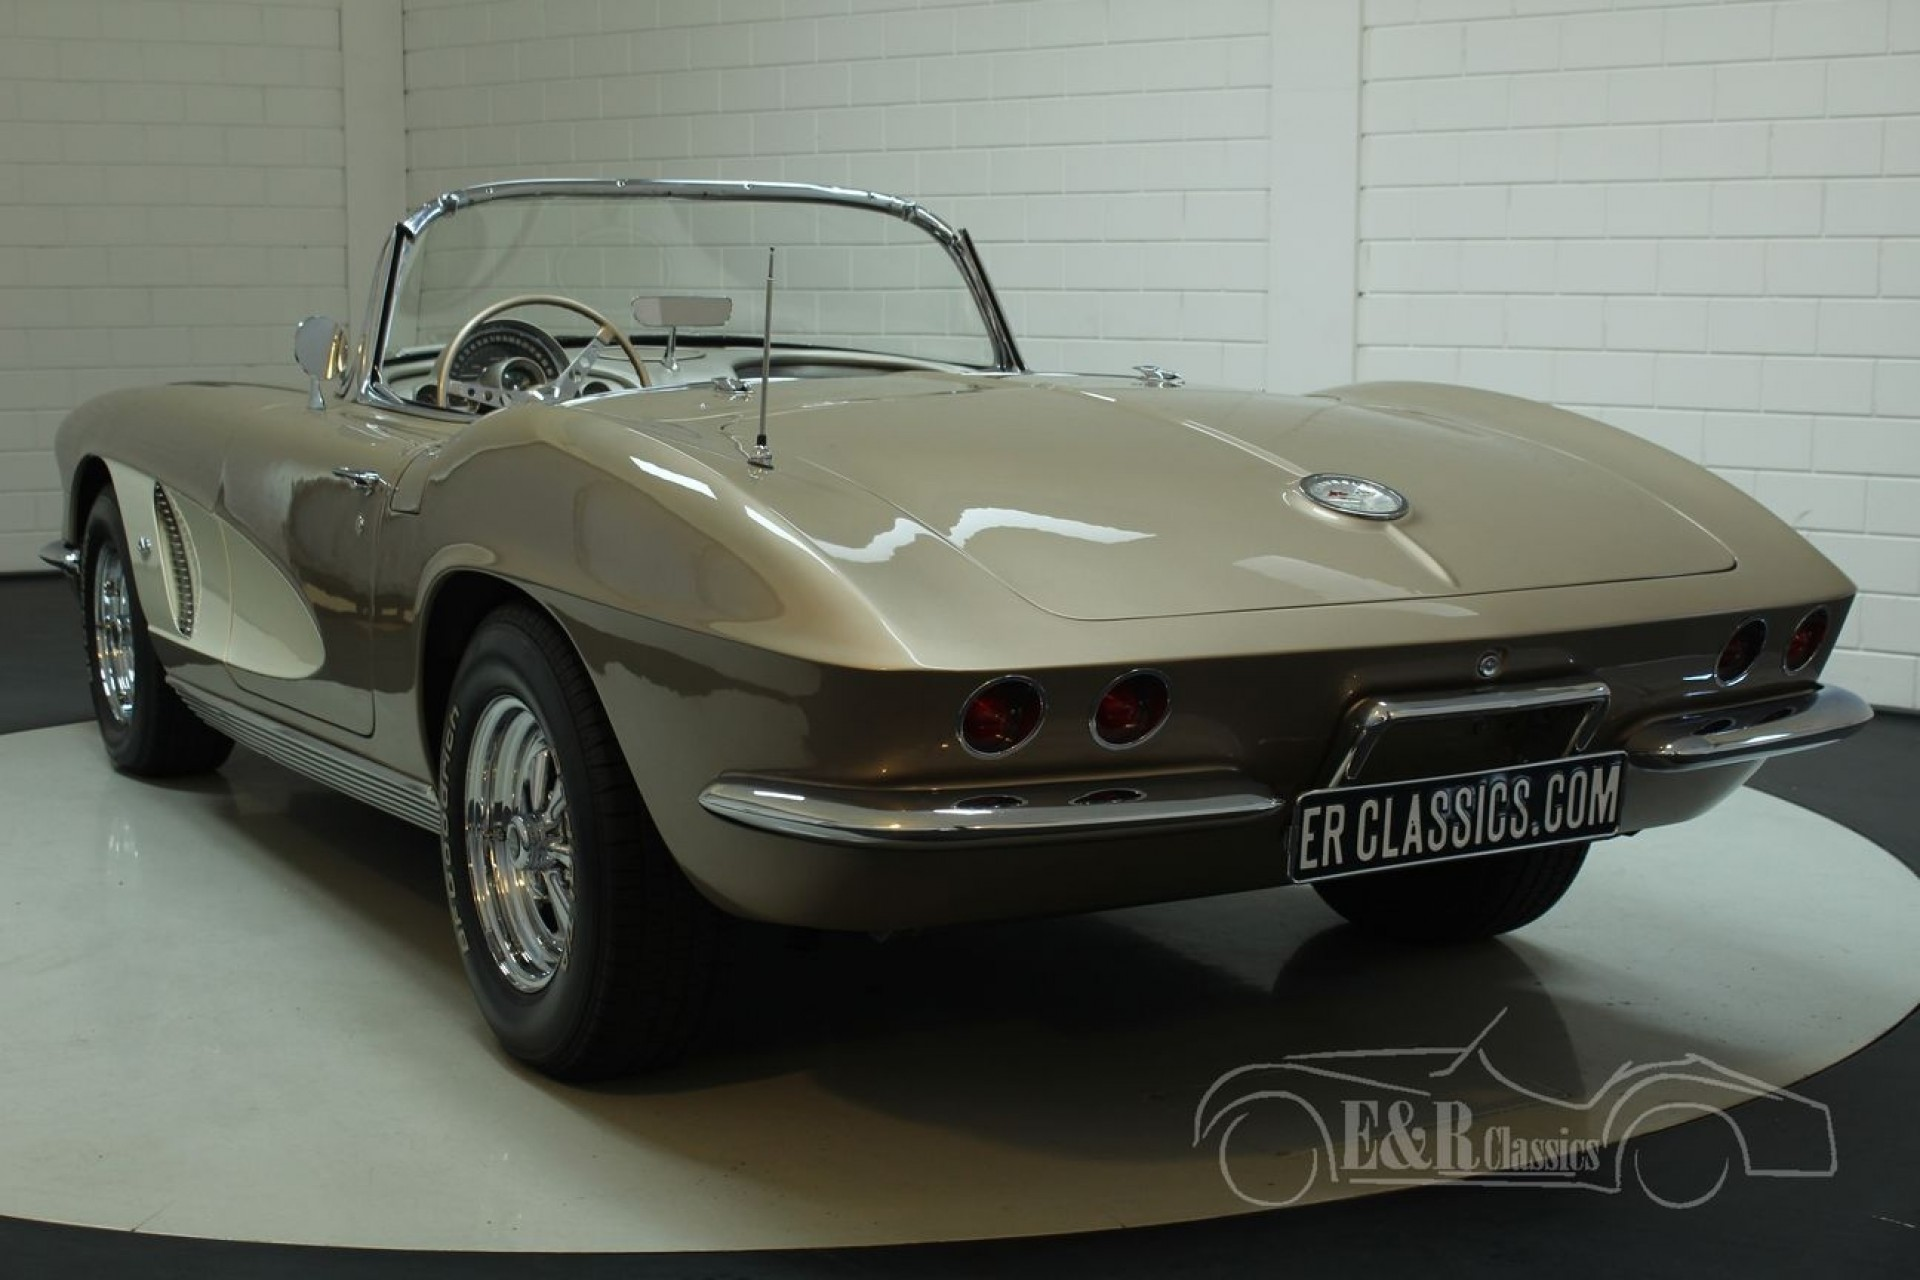 chevrolet corvette c1 cabriolet 1962 vendre erclassics. Black Bedroom Furniture Sets. Home Design Ideas